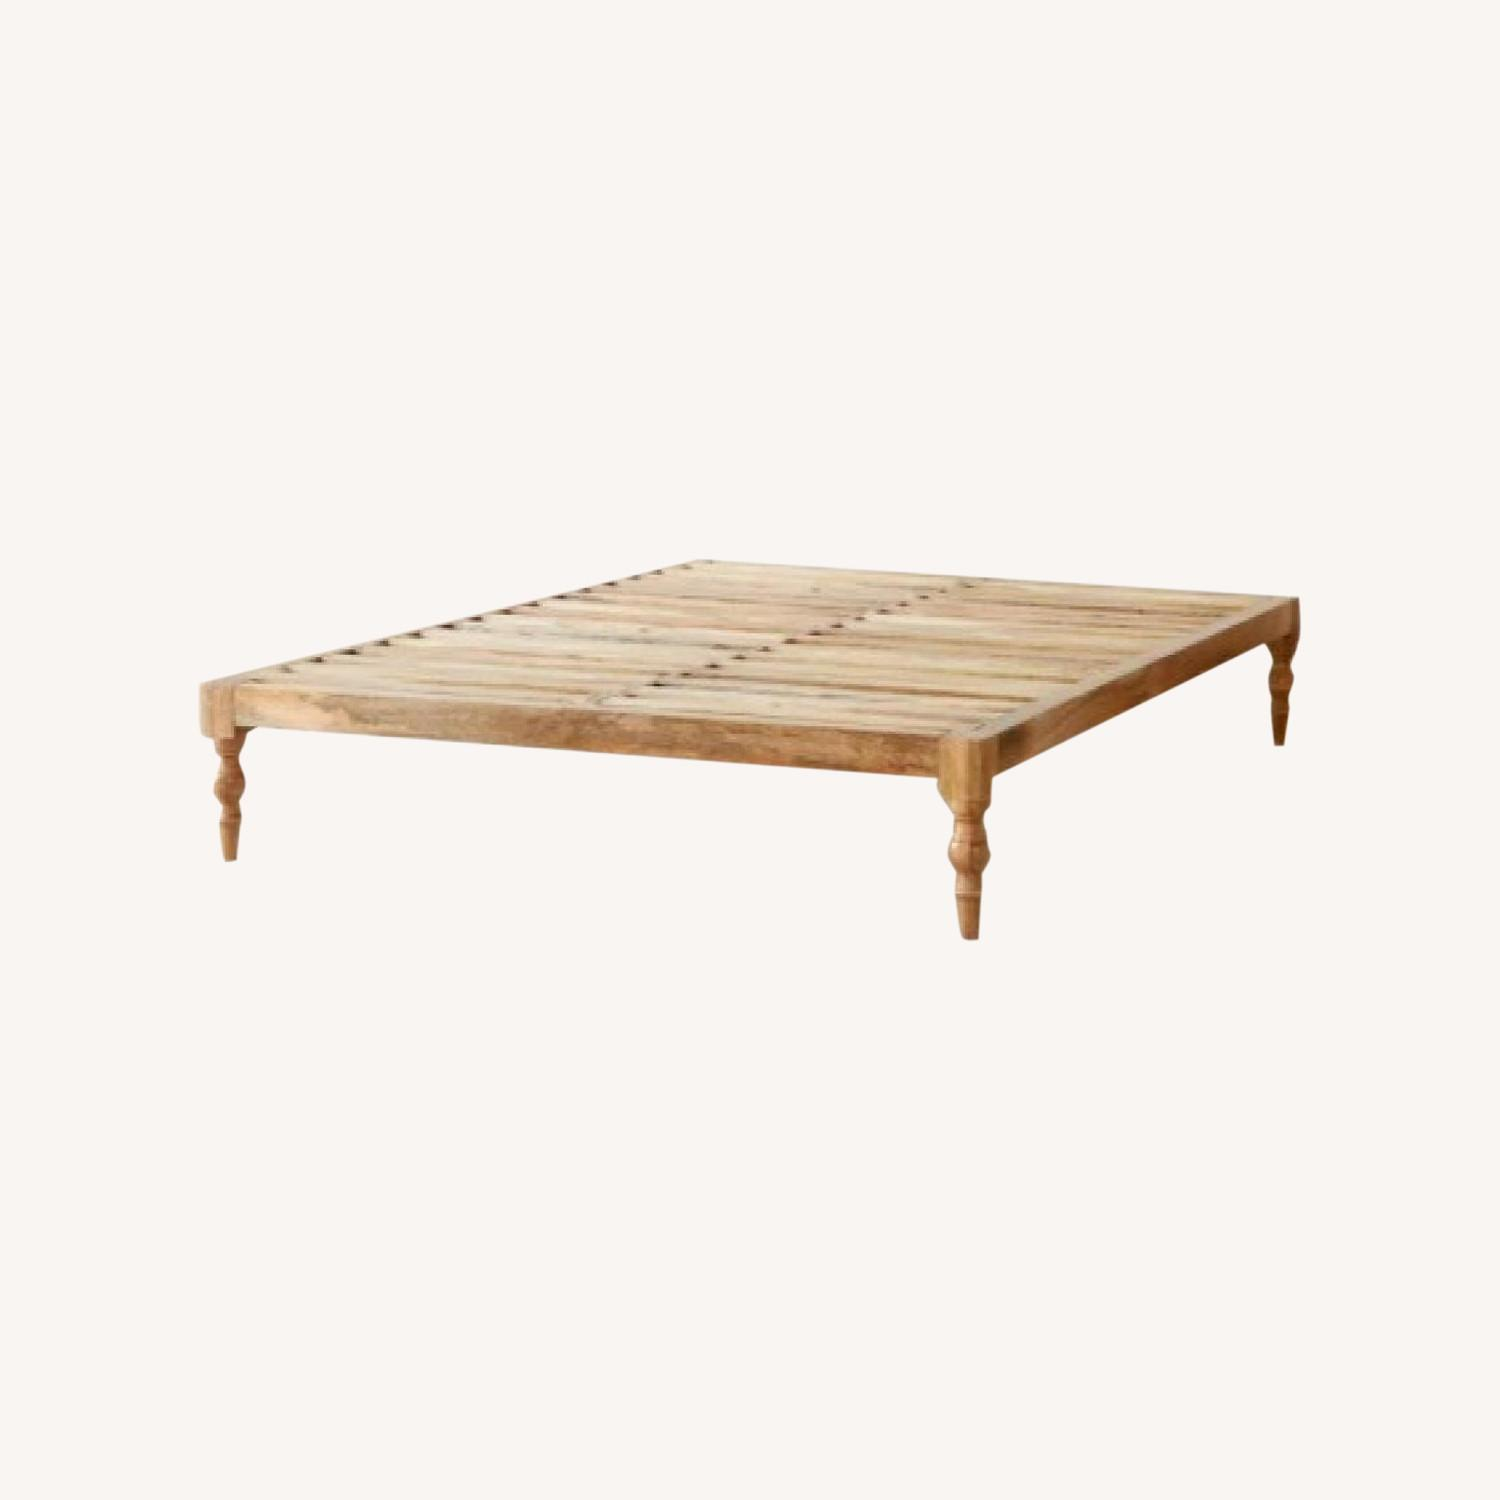 Urban Outfitters Magical Thinking Platform Bed - image-4